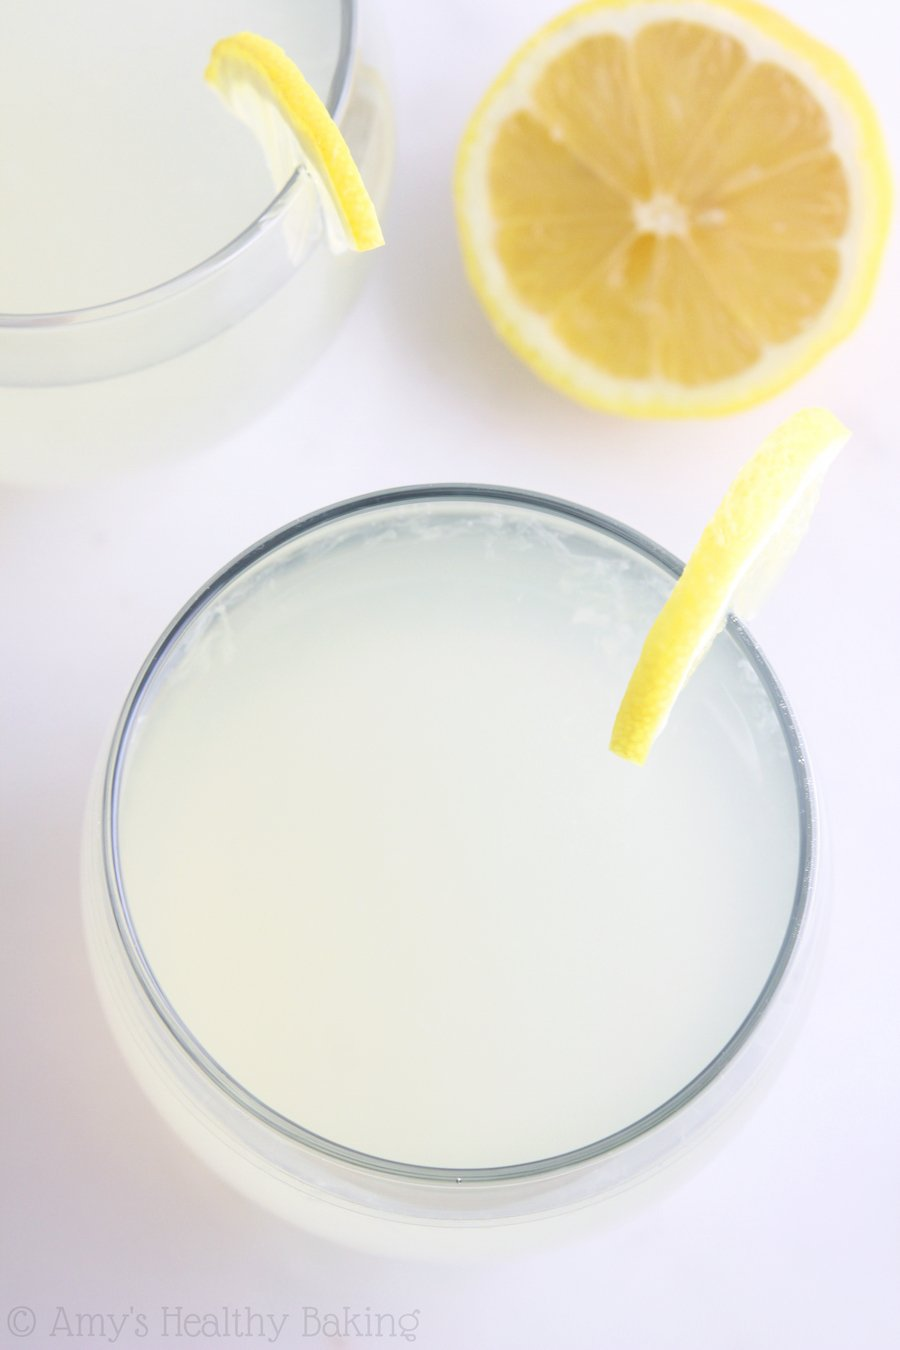 10 Minute Skinny Lemonade -- an easy clean-eating recipe with just 3 ingredients & 12 calories!